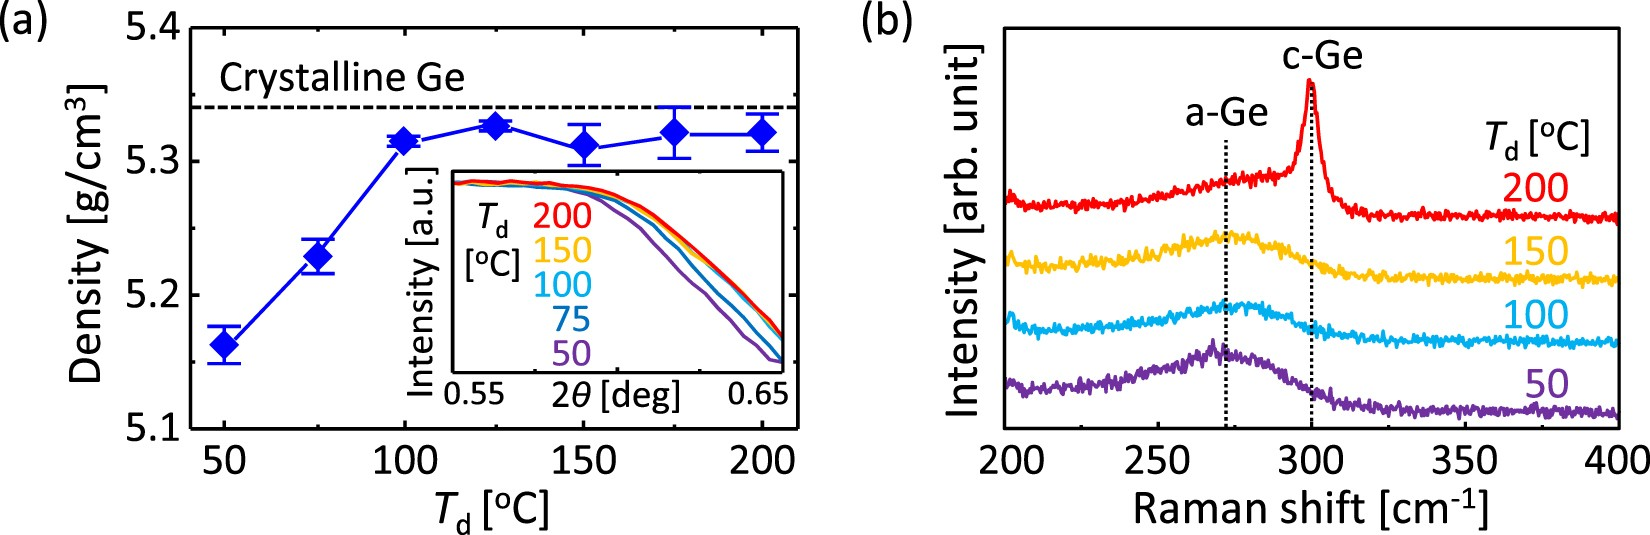 High Hole Mobility Polycrystalline Ge On An Insulator Formed By Circuit Board Holder 315 China Controlling Precursor Atomic Density For Solid Phase Crystallization Scientific Reports